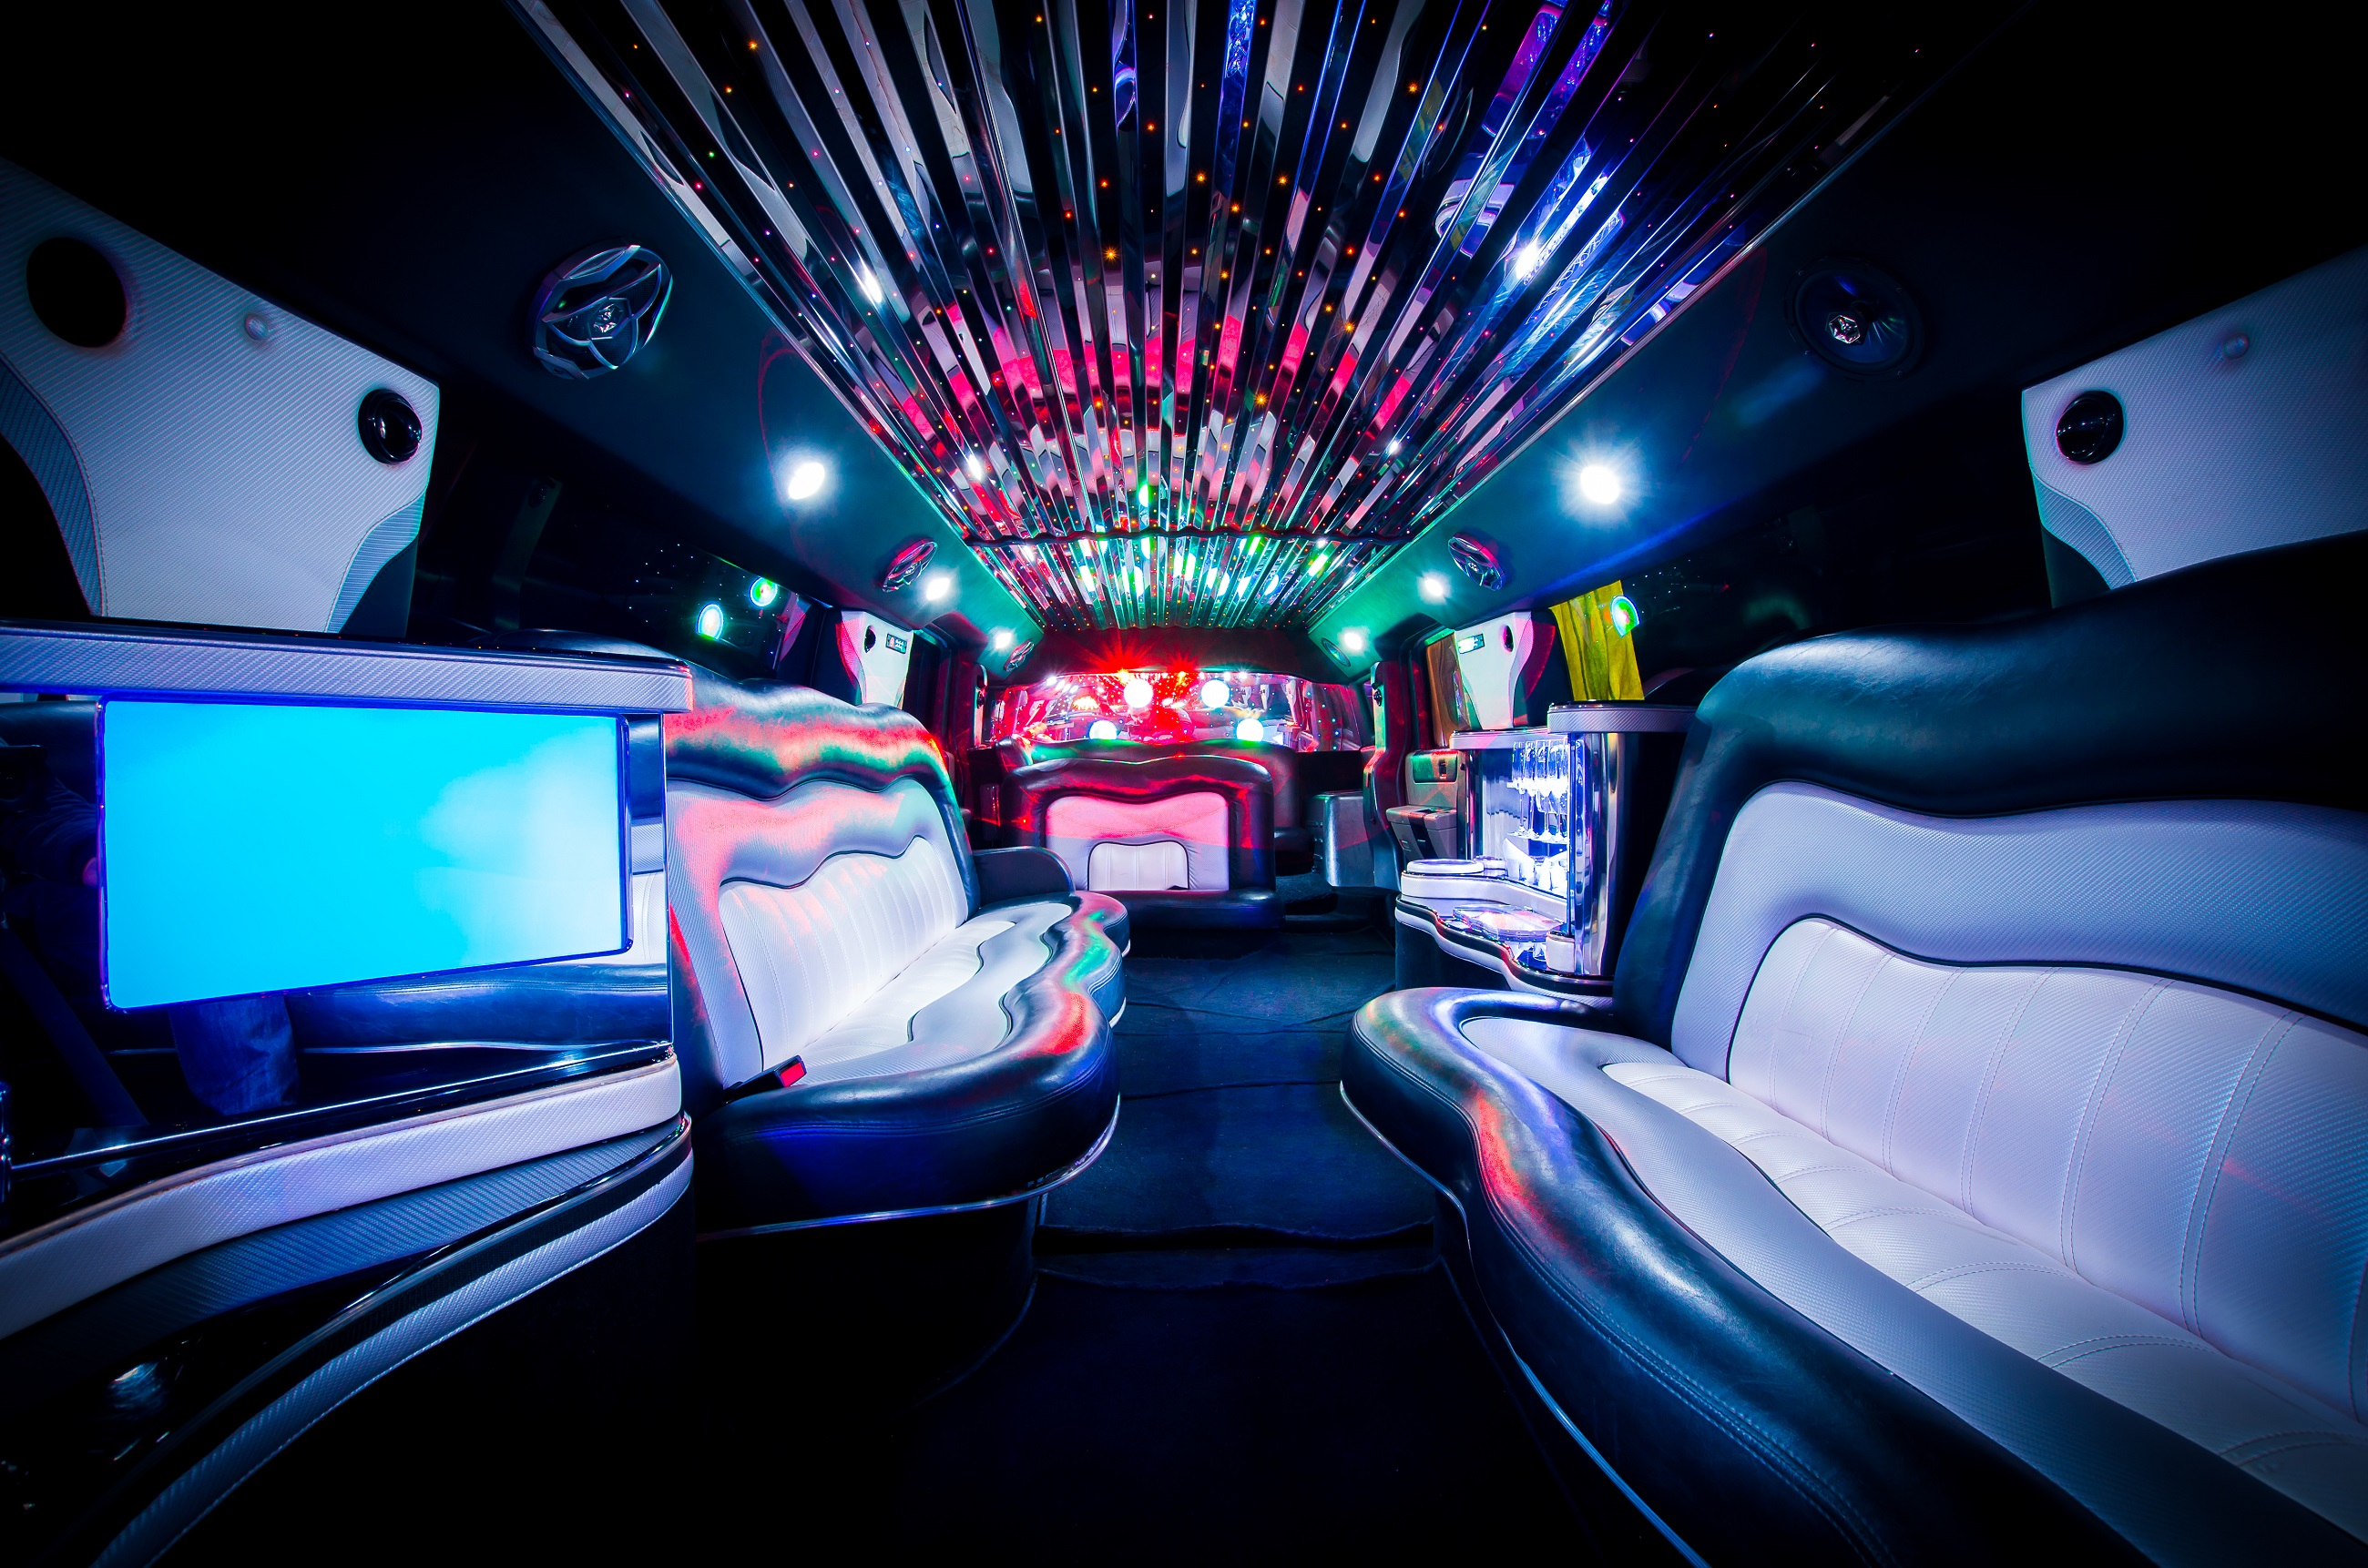 hummer stretchlimousine mieten in siegen stretch hummer verleih limo mieten limousine auto. Black Bedroom Furniture Sets. Home Design Ideas